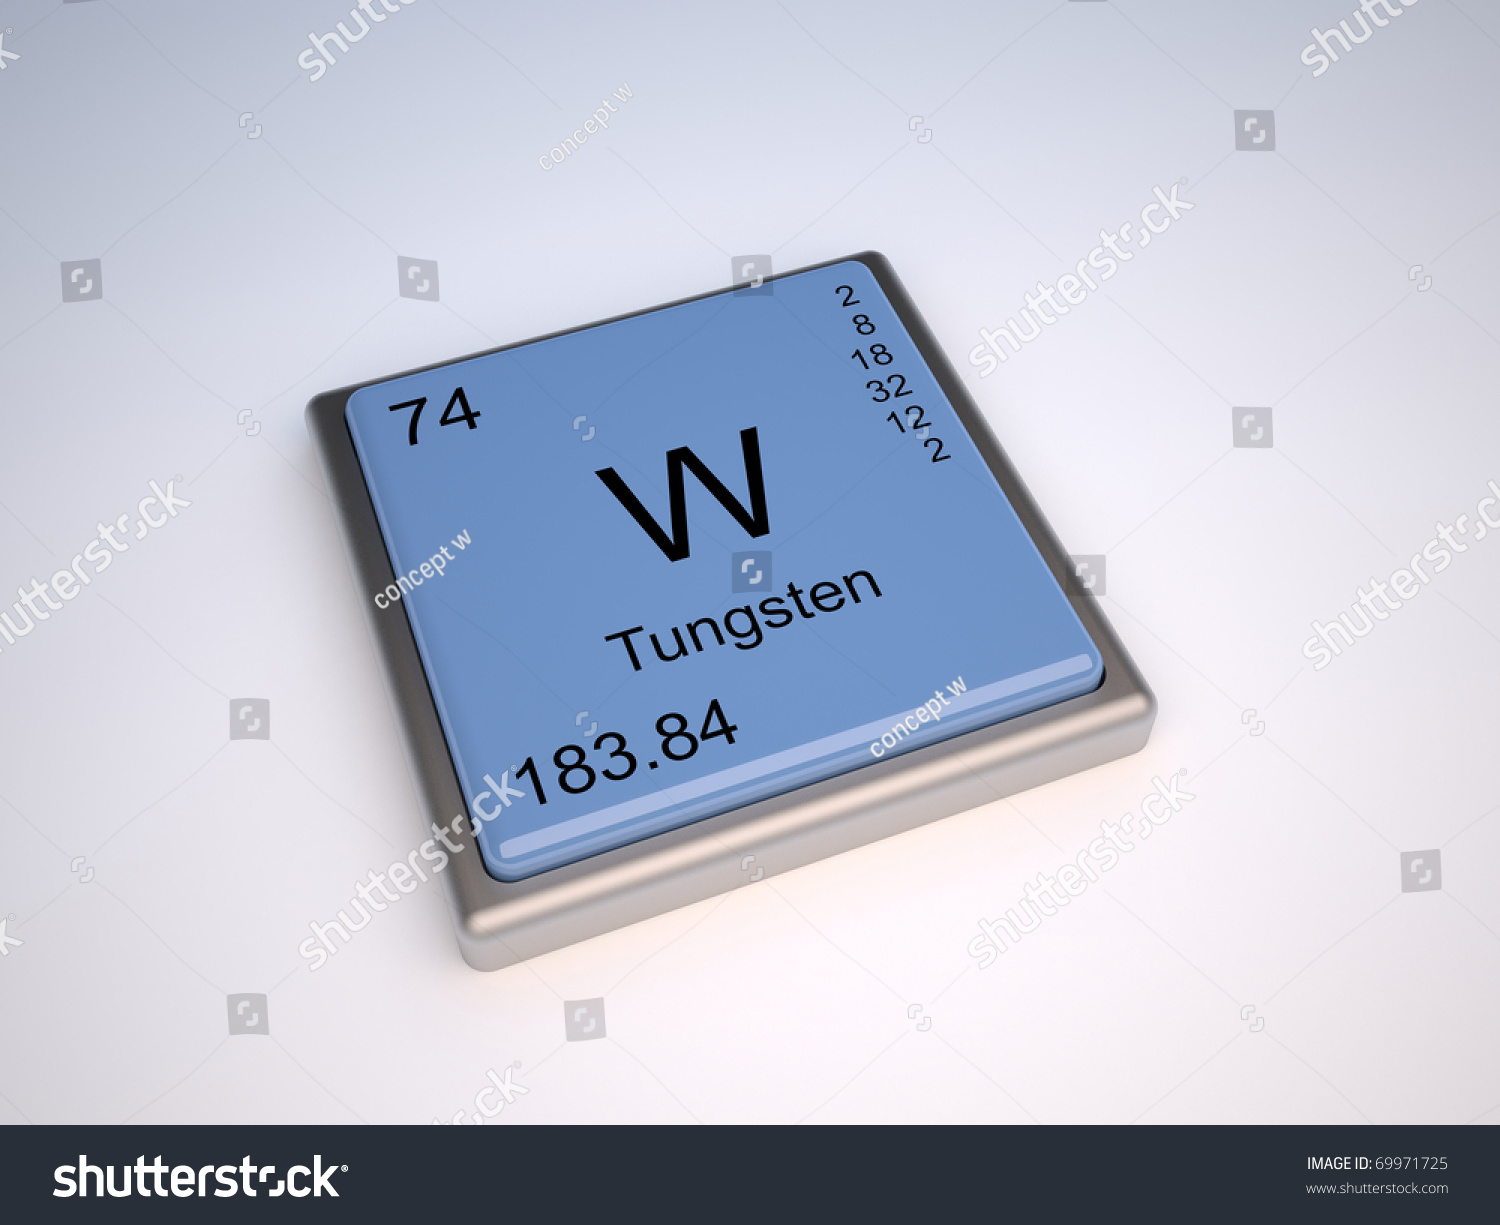 Tungsten chemical element periodic table symbol stock illustration tungsten chemical element of the periodic table with symbol w iupac gamestrikefo Choice Image